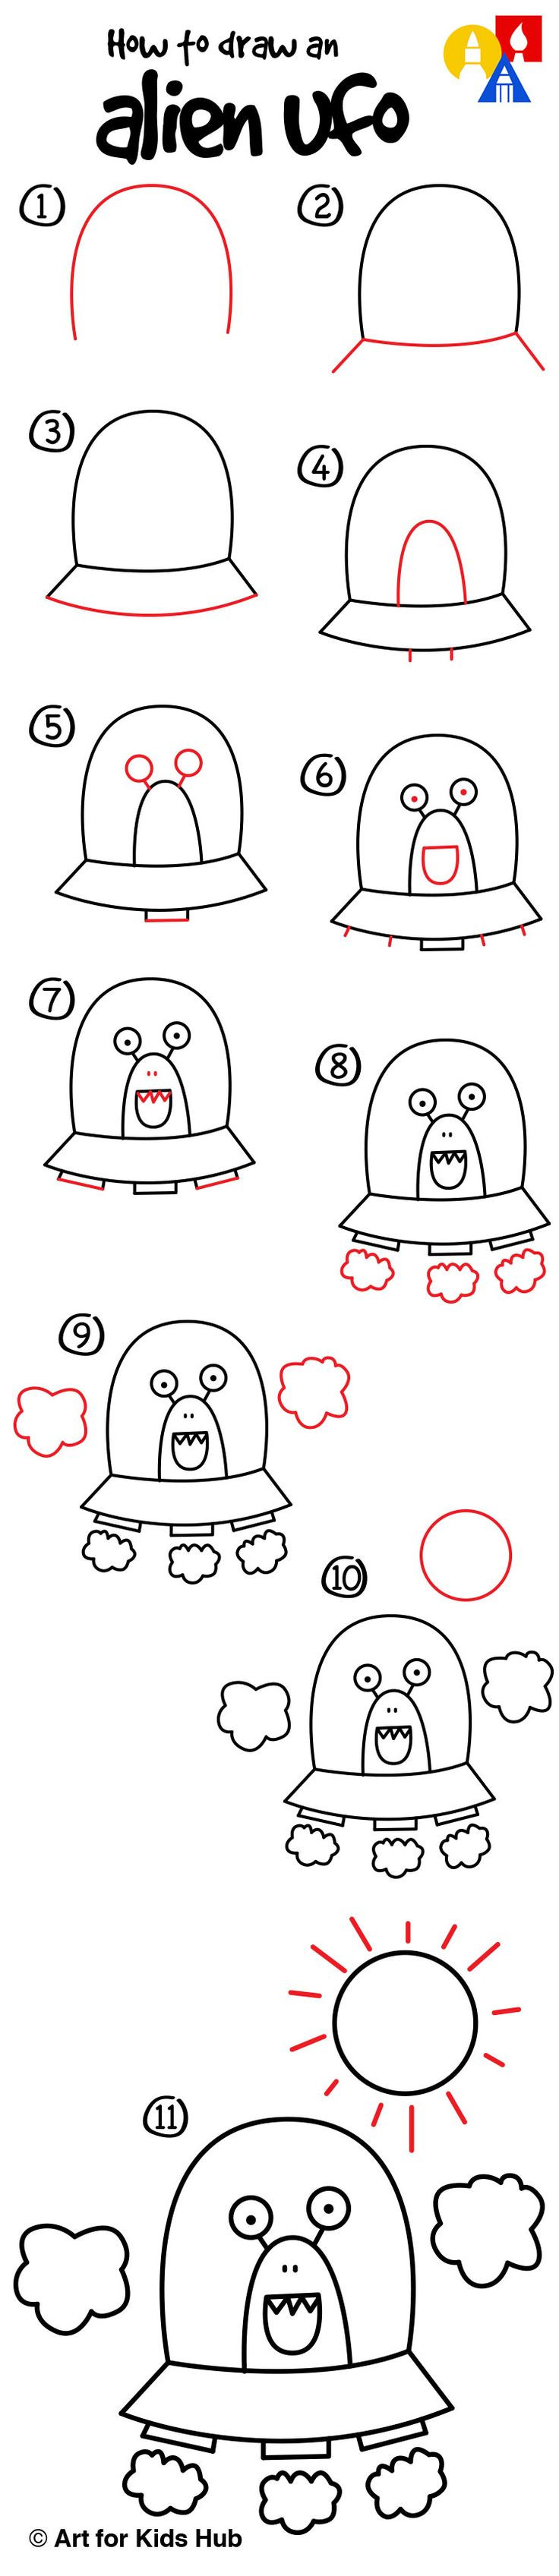 How To Draw An Alien UFO (young artists) - Art For Kids Hub -